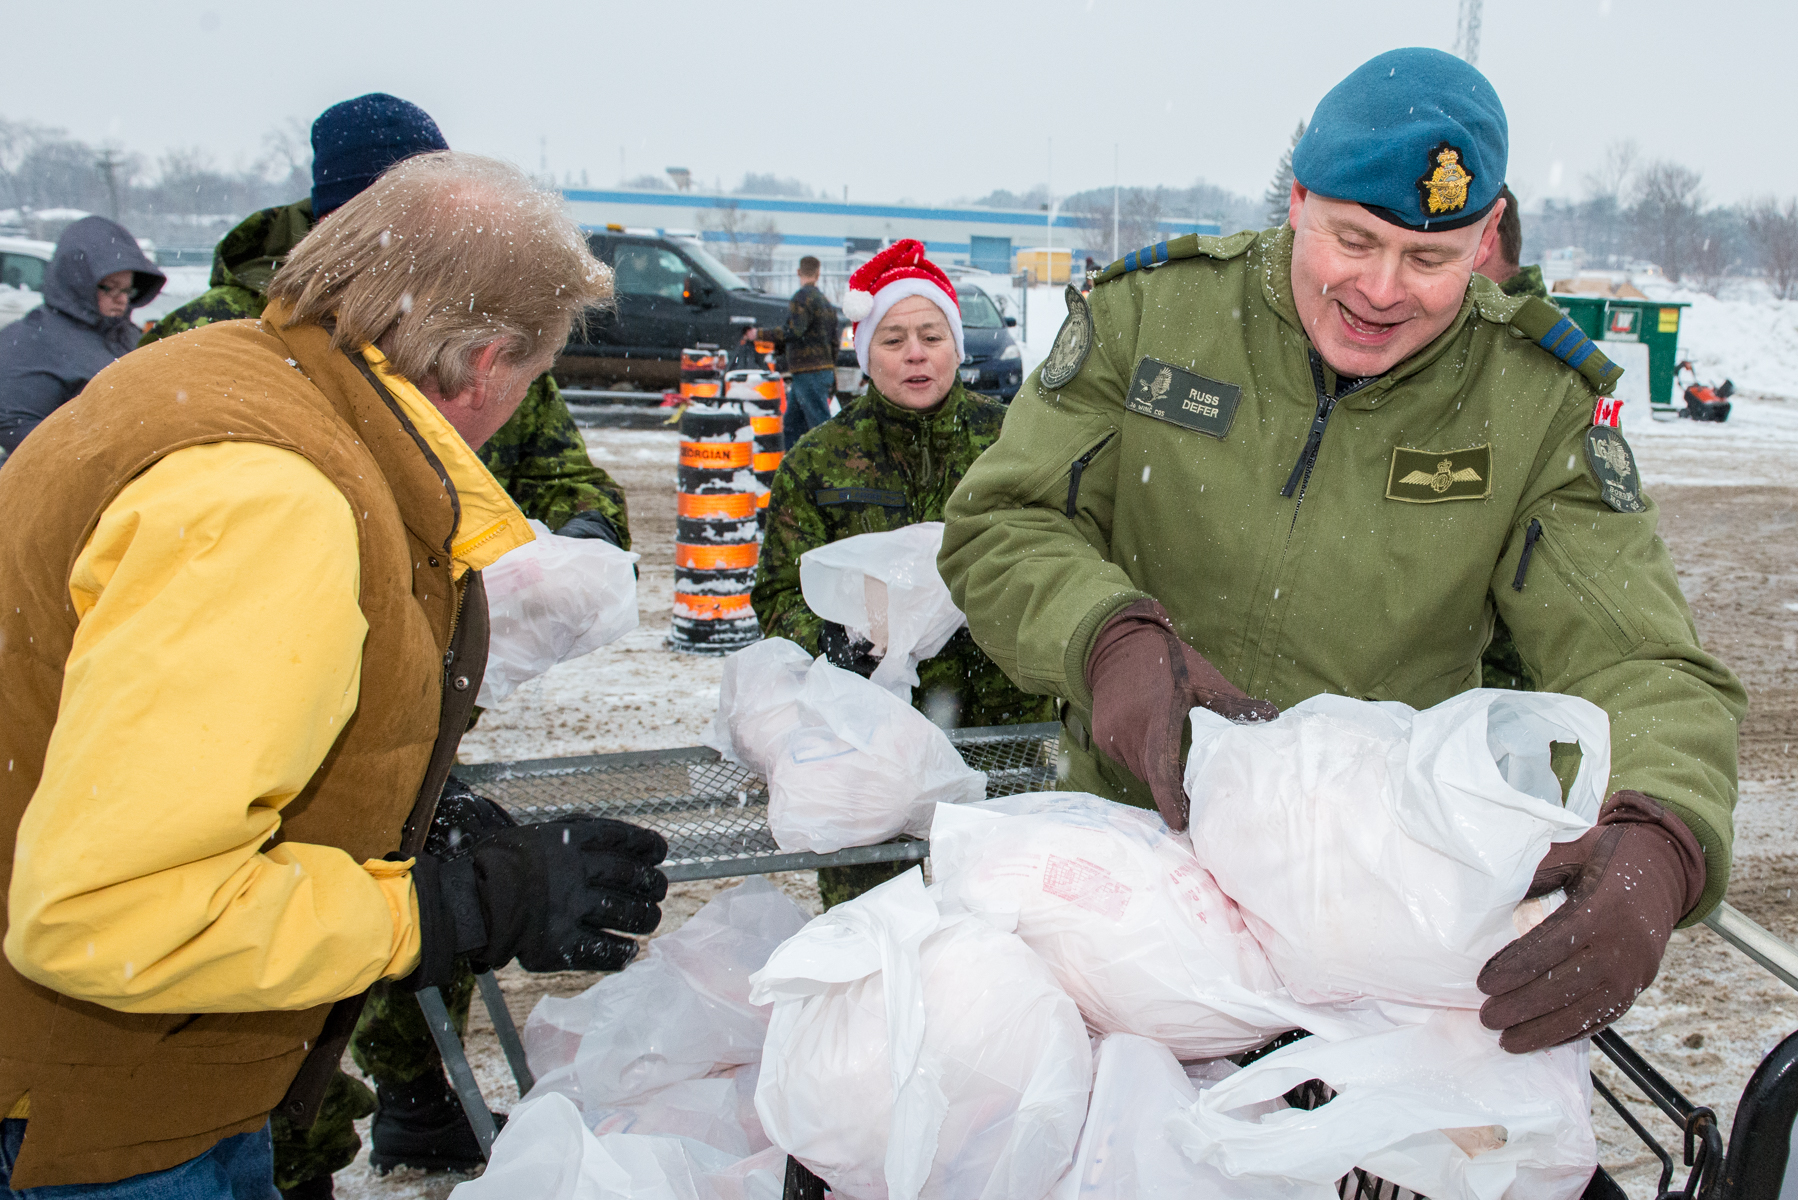 Lieutenant Colonel Russell Defer, 16 Wing Headquarters chief of staff (right), Wing Chief Warrant Officer Necole Belanger (centre), and volunteers load frozen turkeys into a cart in preparation to hand out to families during Barrie's Christmas Cheer event, at Flags Unlimited Corporation in Barrie, Ontario on December 22, 2016. PHOTO: Corporal Aydyn Neifer, BM03-2016-0389-04